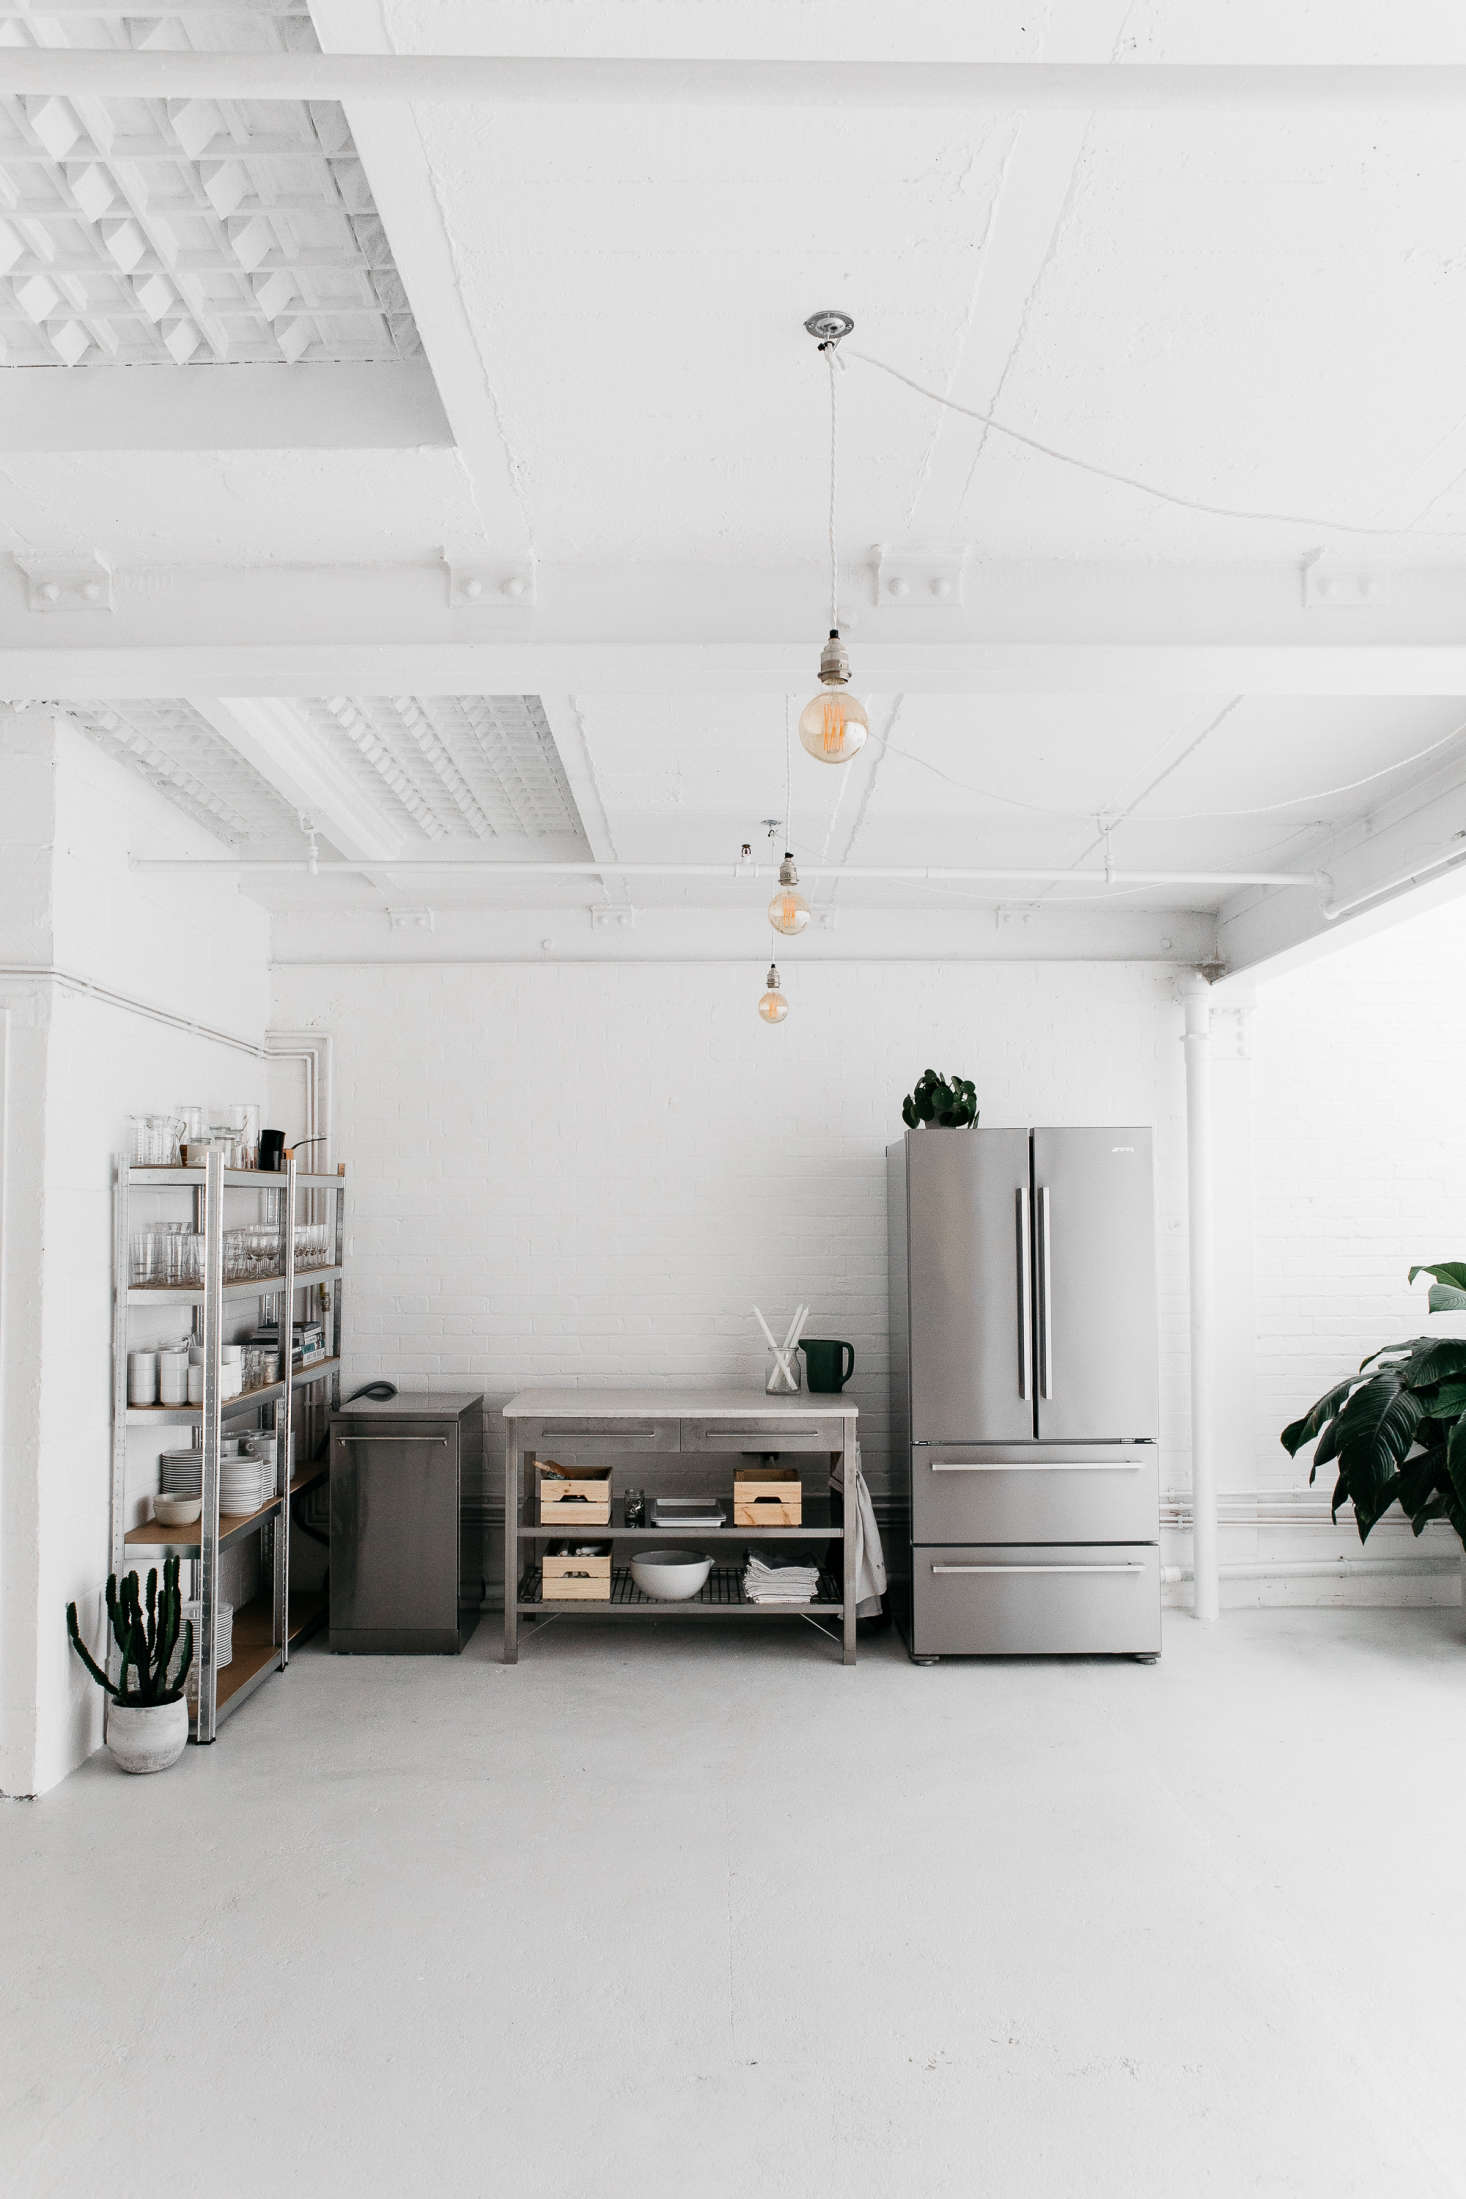 Spacious kitchens, particularly those that see a lot of use, can accommodate a larger-scale refrigerator, such as this stainless-steel model inKitchen of the Week: An Artful Ikea Hack Kitchen by Two London Foodies.